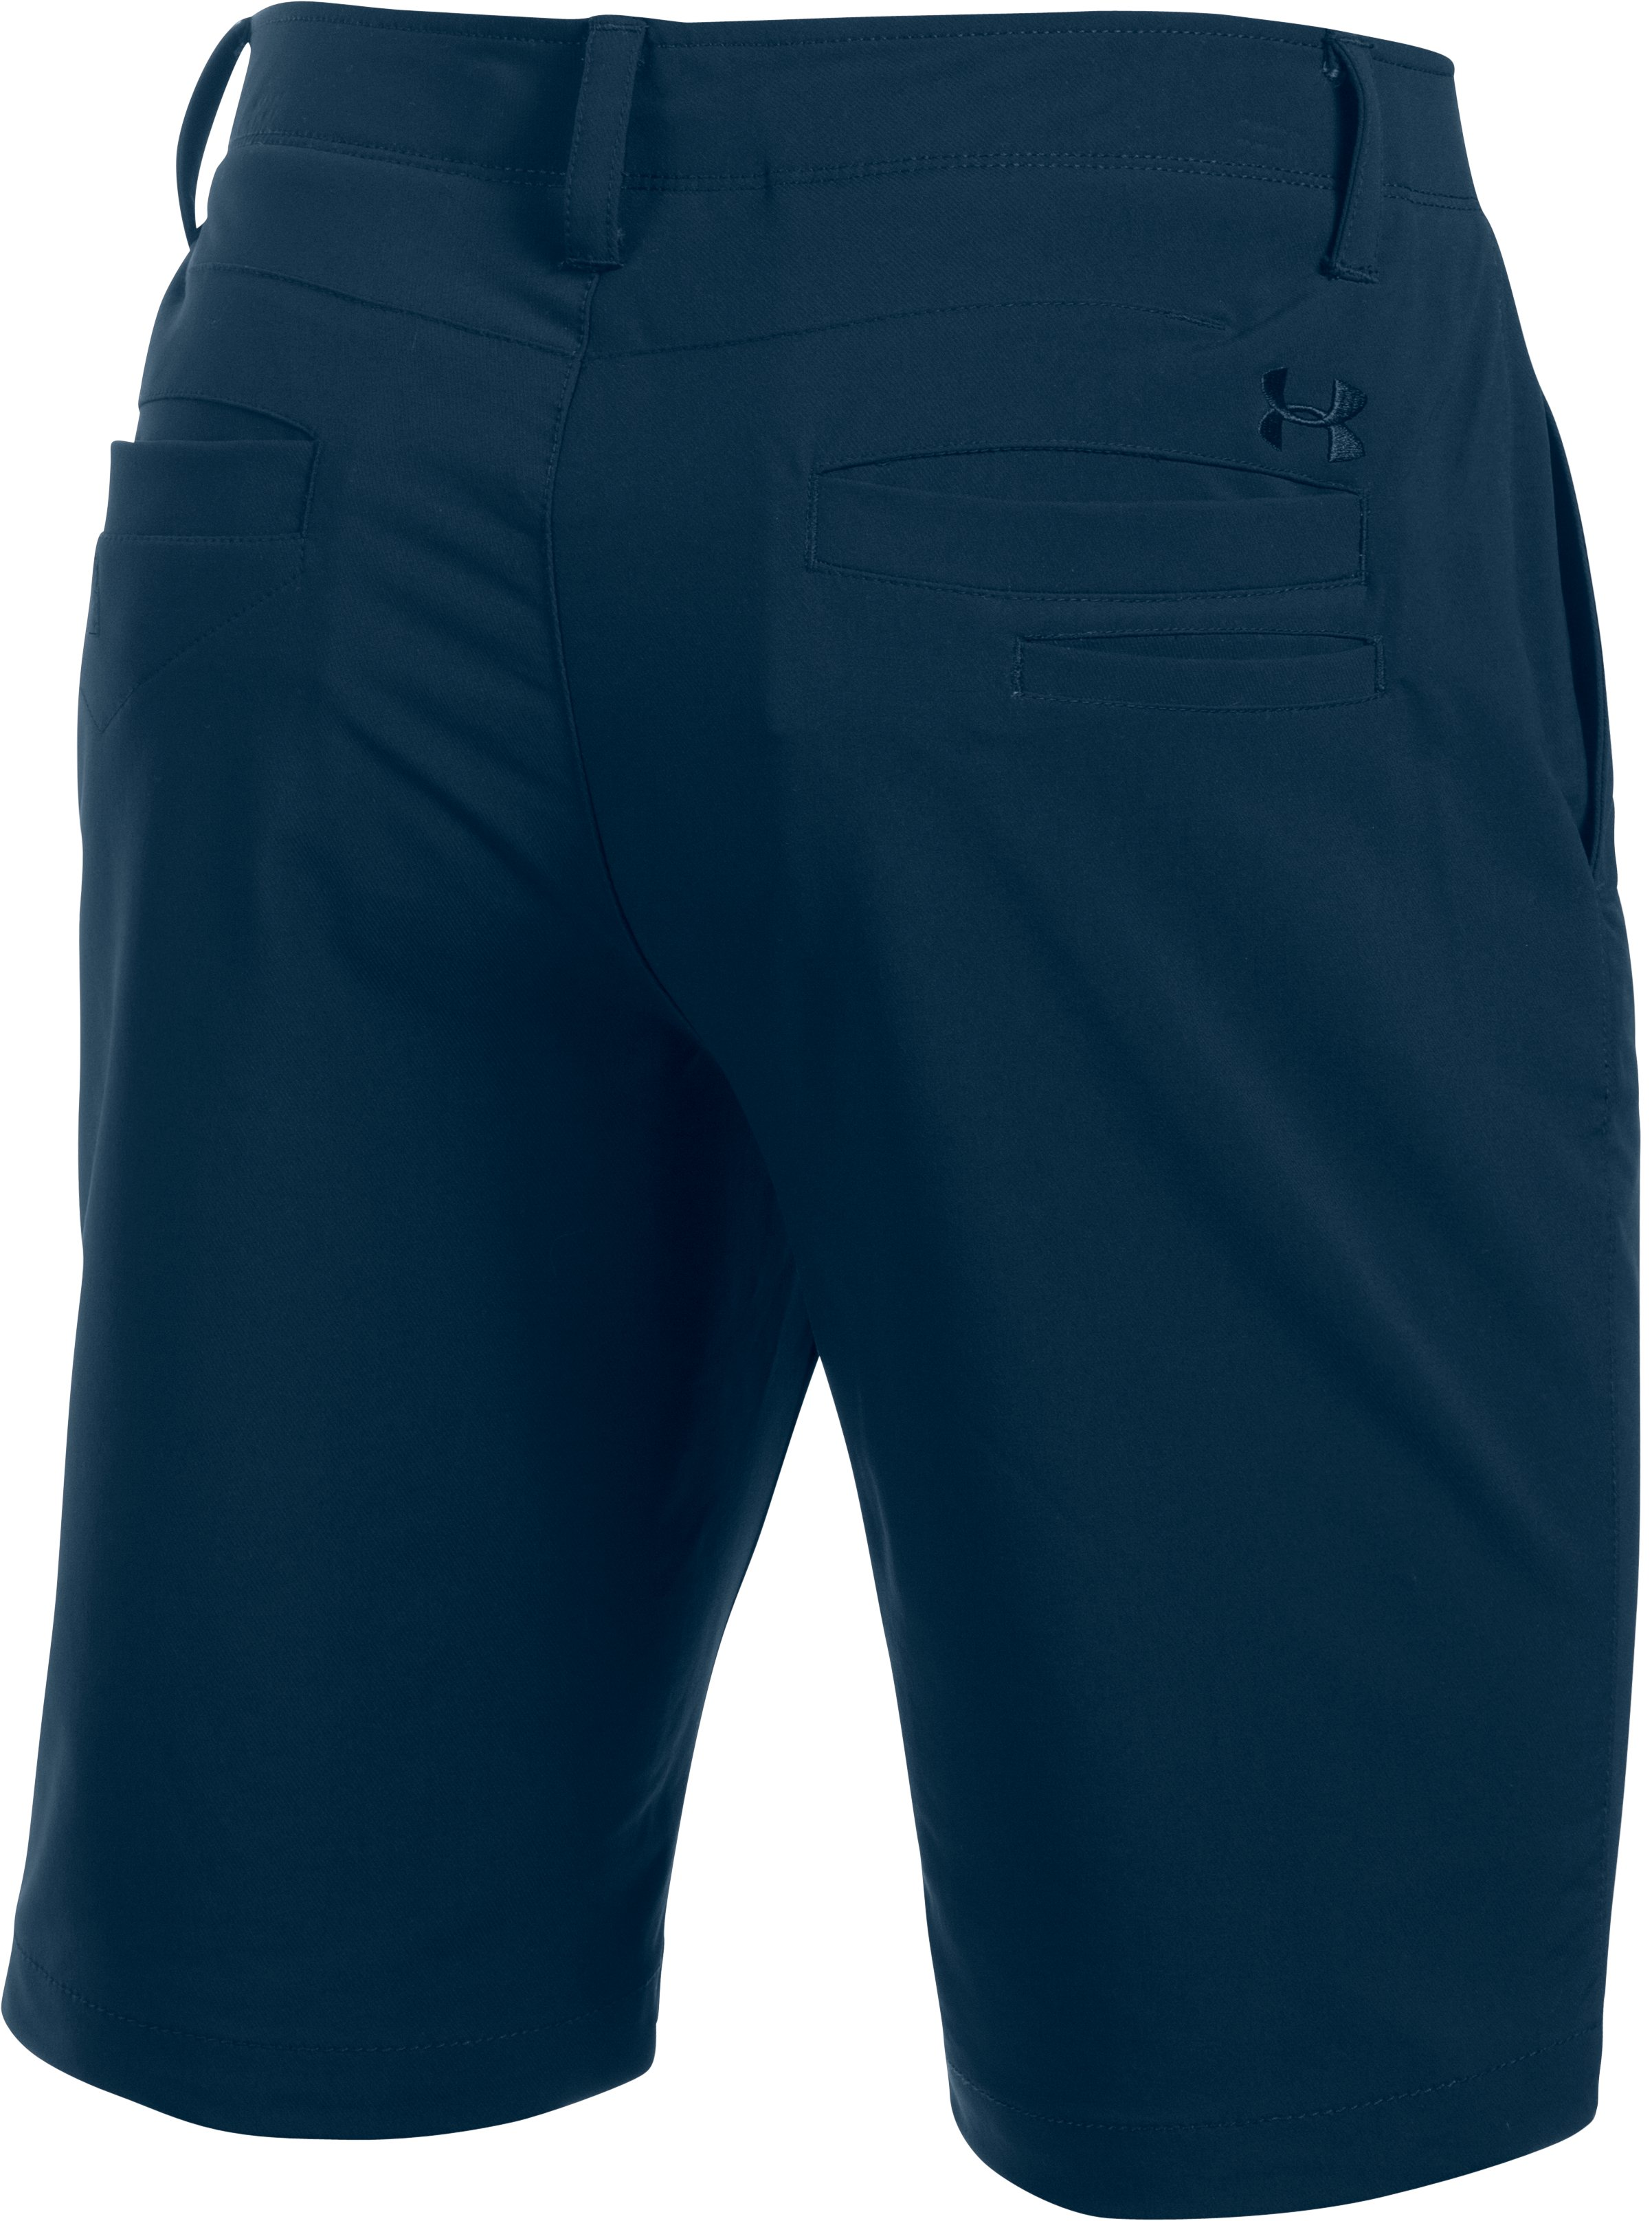 Men's UA Match Play Tapered Shorts, Academy,